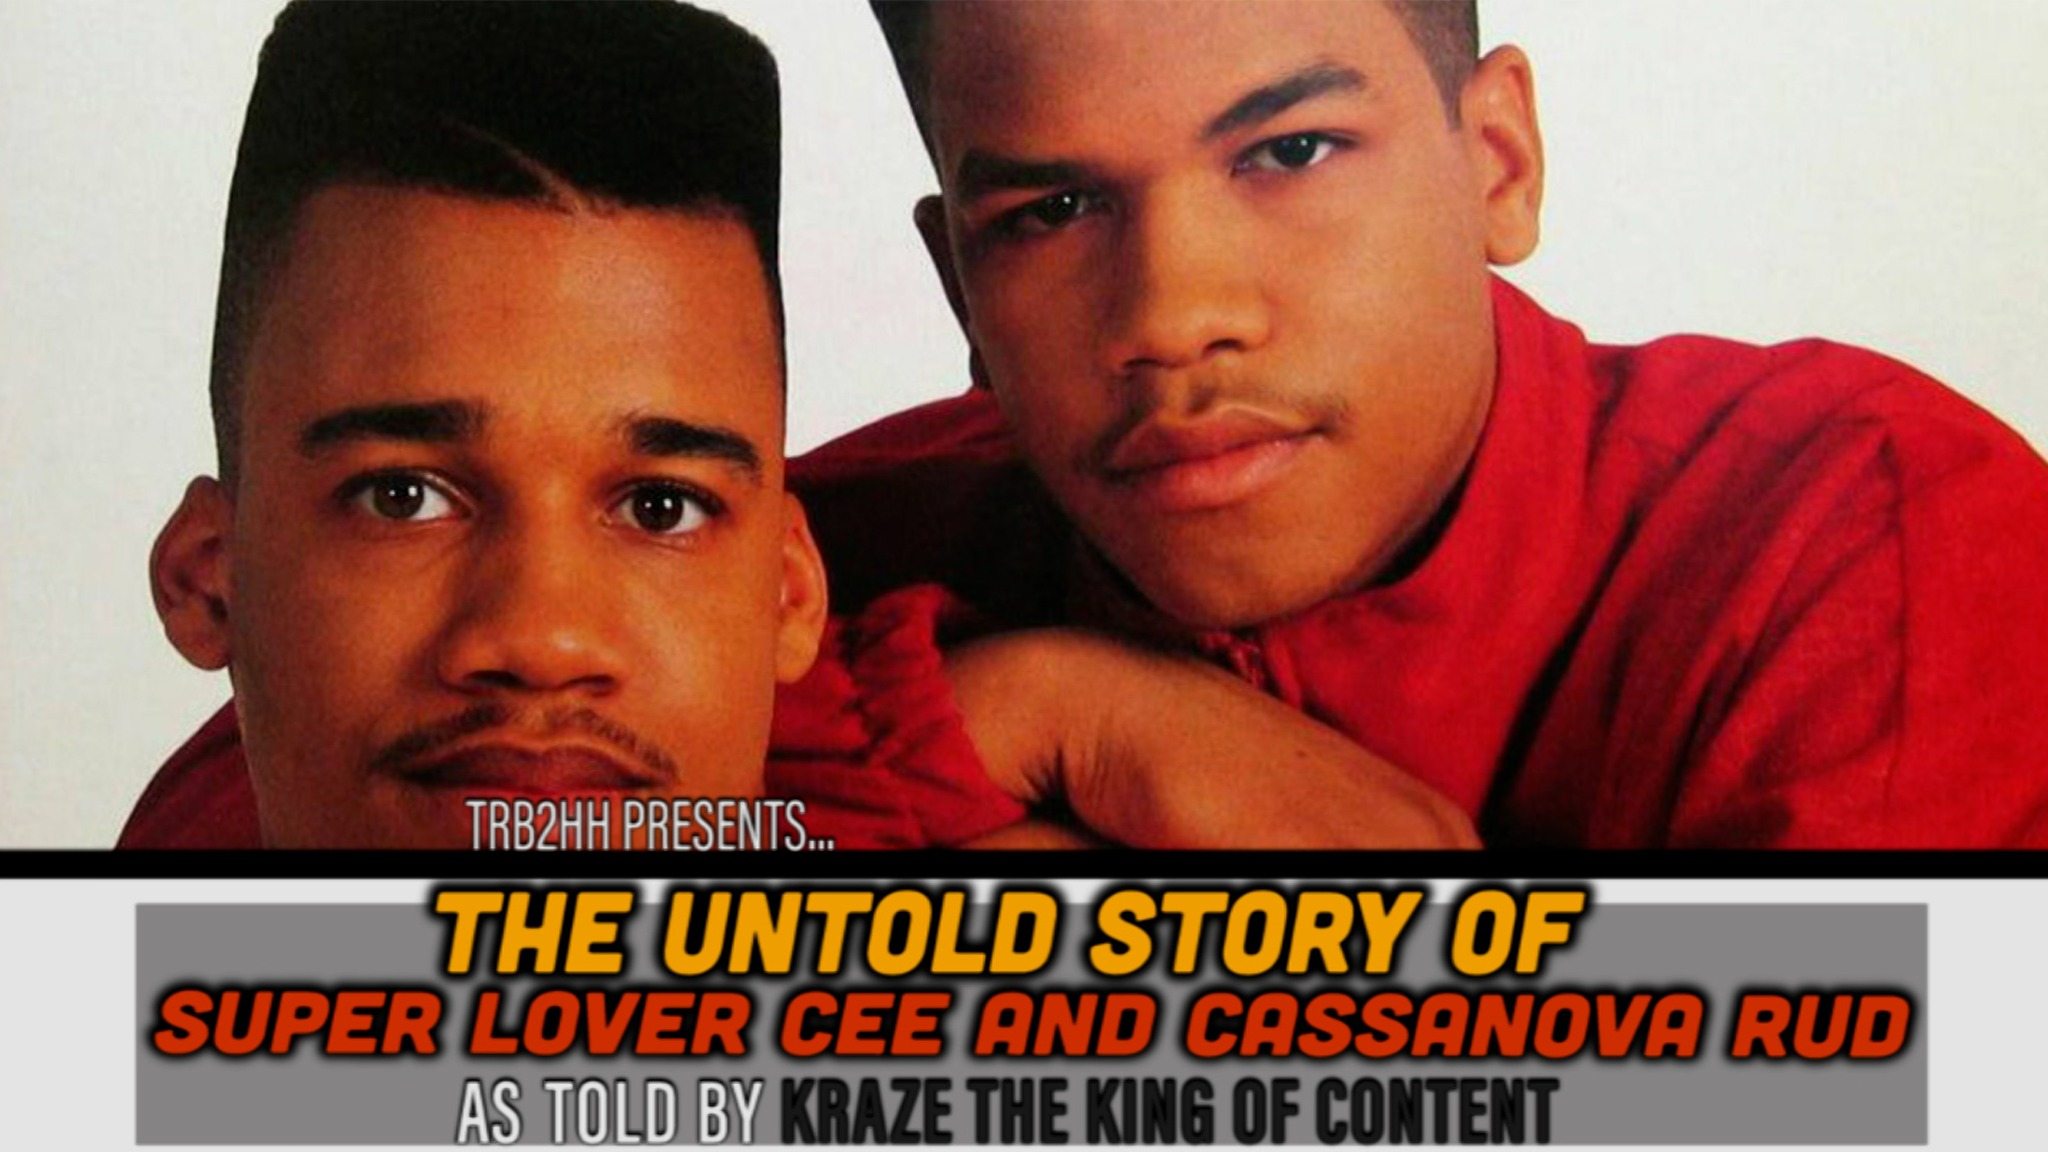 The Untold Story of Super Lover Cee and Casanova Rud